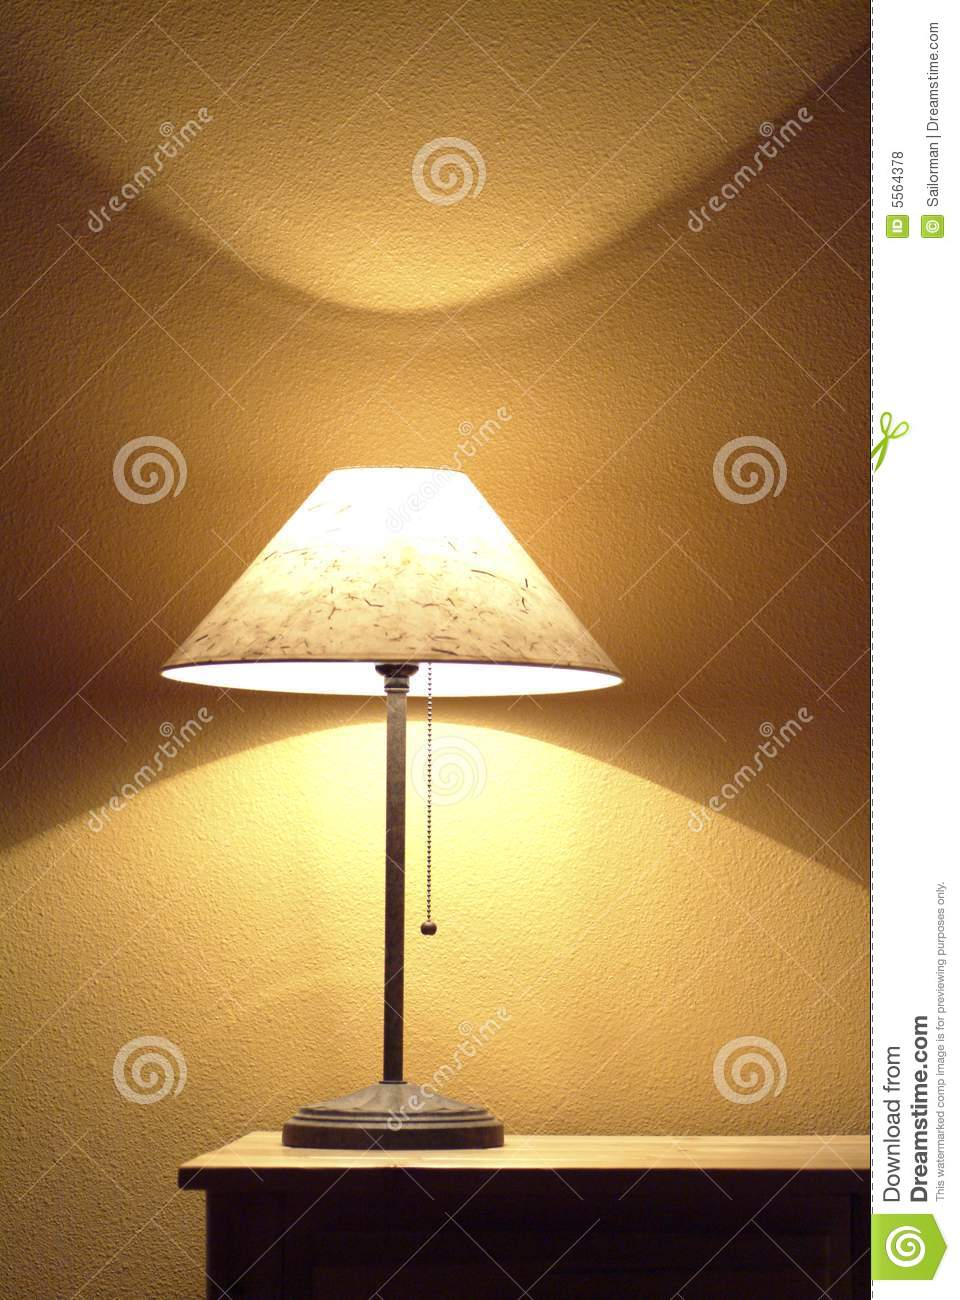 end table lamp royalty free stock photos image 5564378. Black Bedroom Furniture Sets. Home Design Ideas